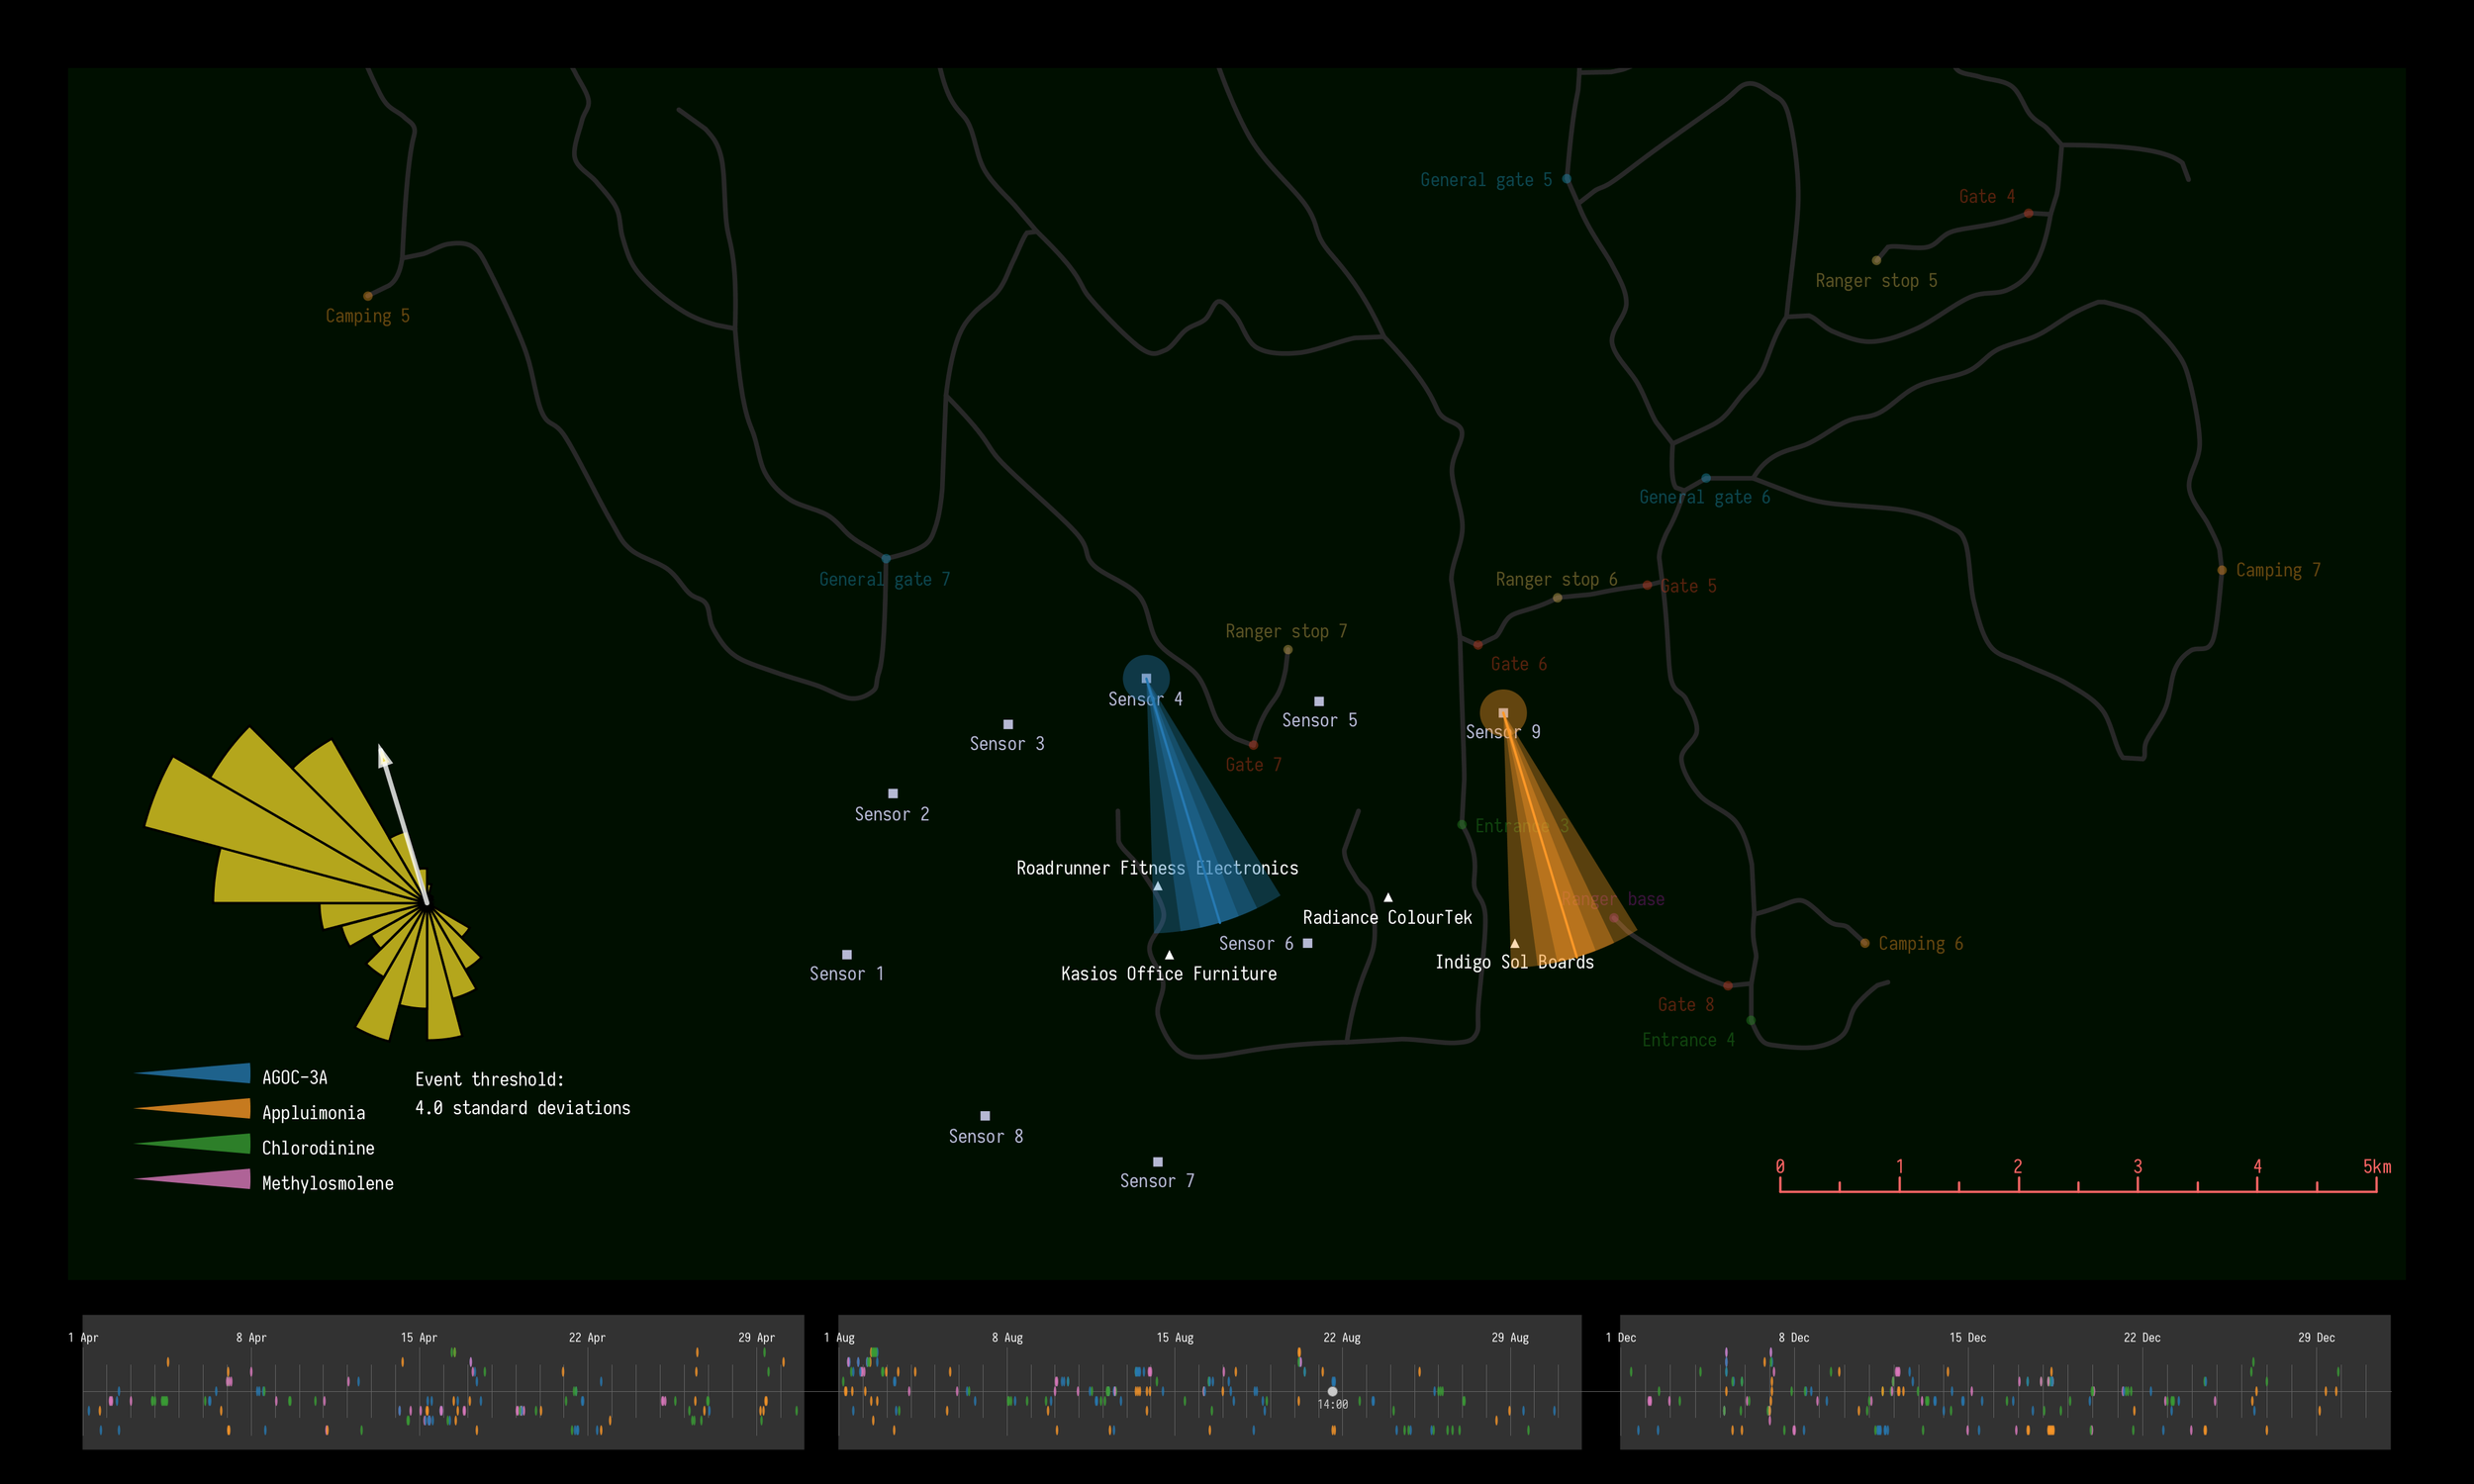 Figure 17  -Example of two detection events shown on 21st August, 14:00 by Sensors 4 and 9 in map and timeline views. Cones show probable source direction based on measured wind direction and speed at time of event. Wind rose on left shows summary of prevailing wind (yellow segments) and direction and speed of wind at selected event time (white arrow).